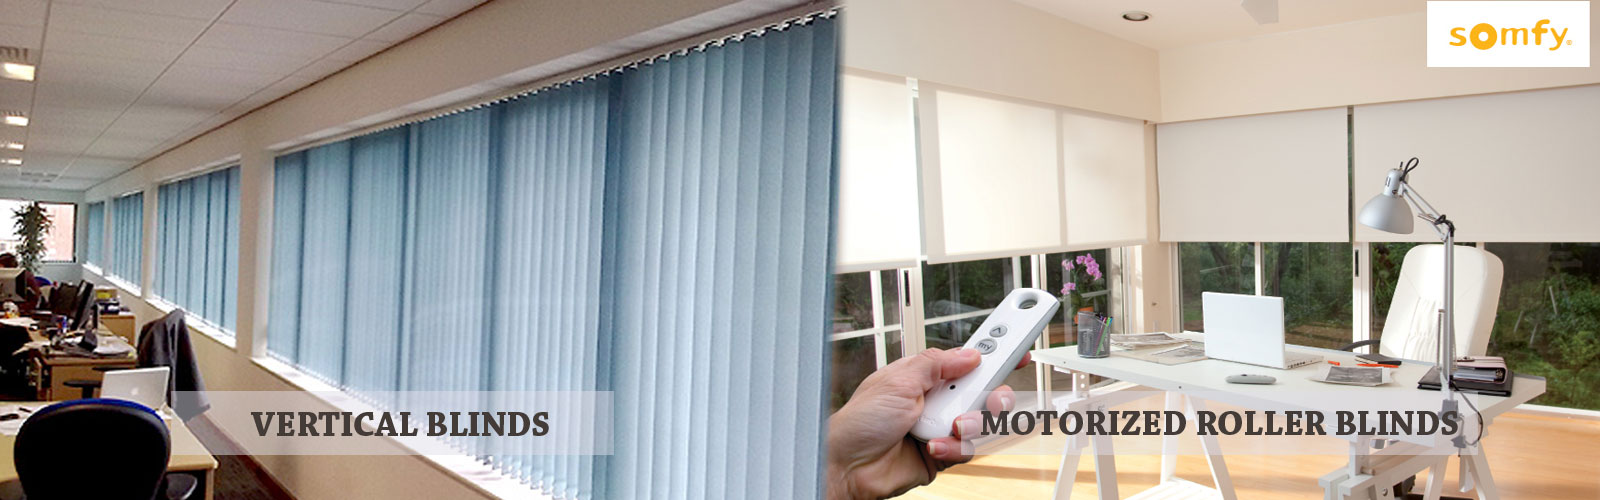 Blinds in chennai,Wooden Roller Blinds in chennai, Flooring in chennai, Roller Blinds in chennai, Vertical Blinds in chennai